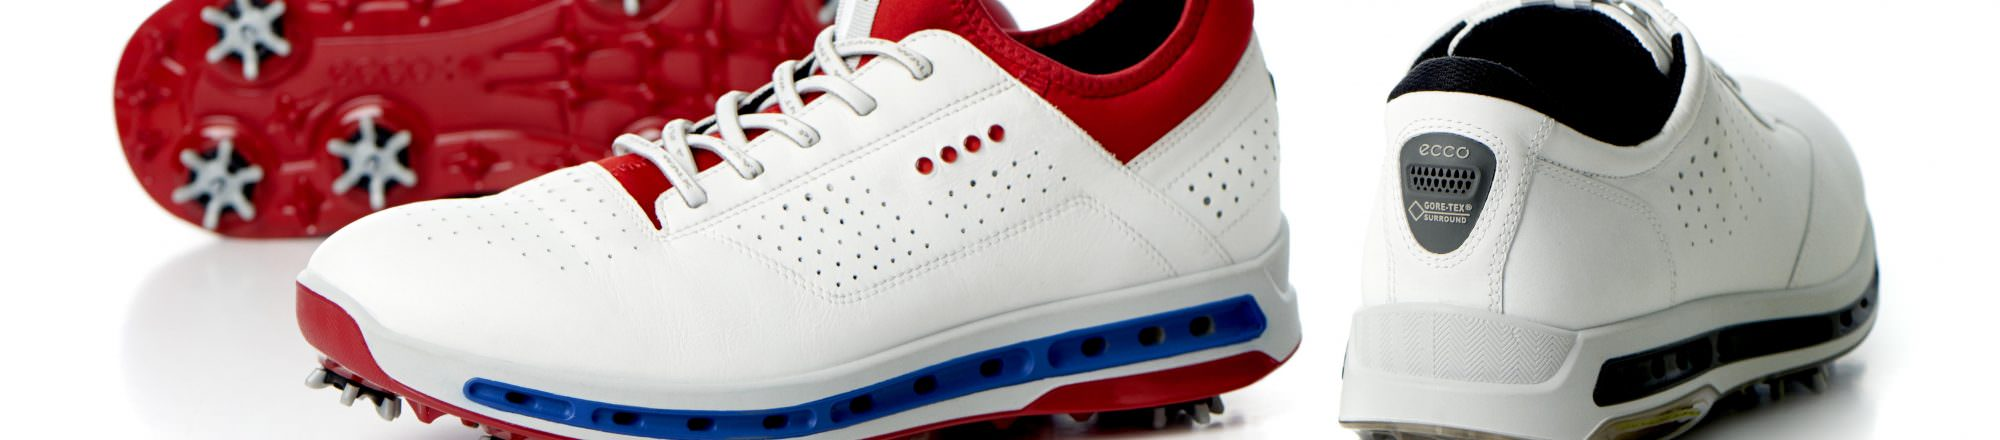 Equipment: Ecco Cool golf shoes review